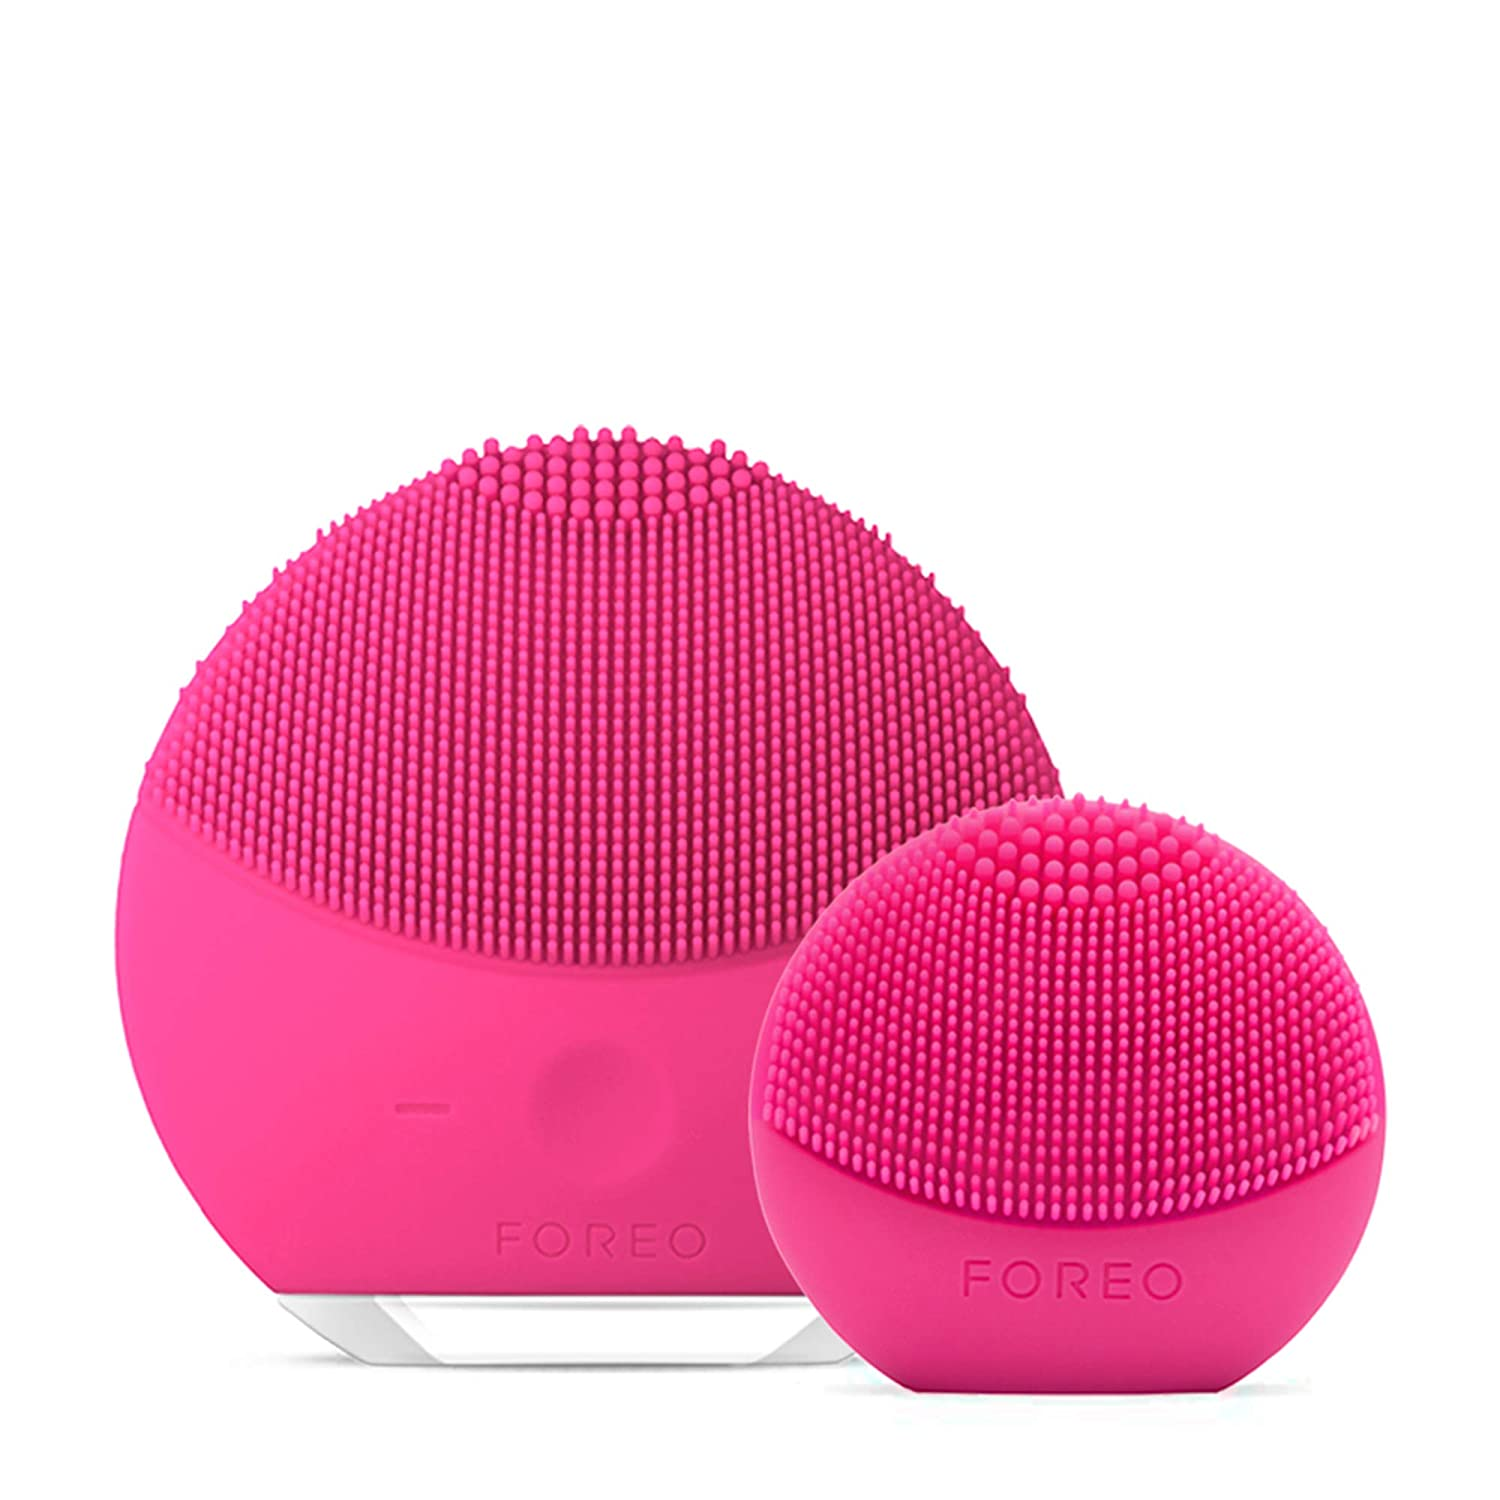 foreo here & there skincare gift set reviews